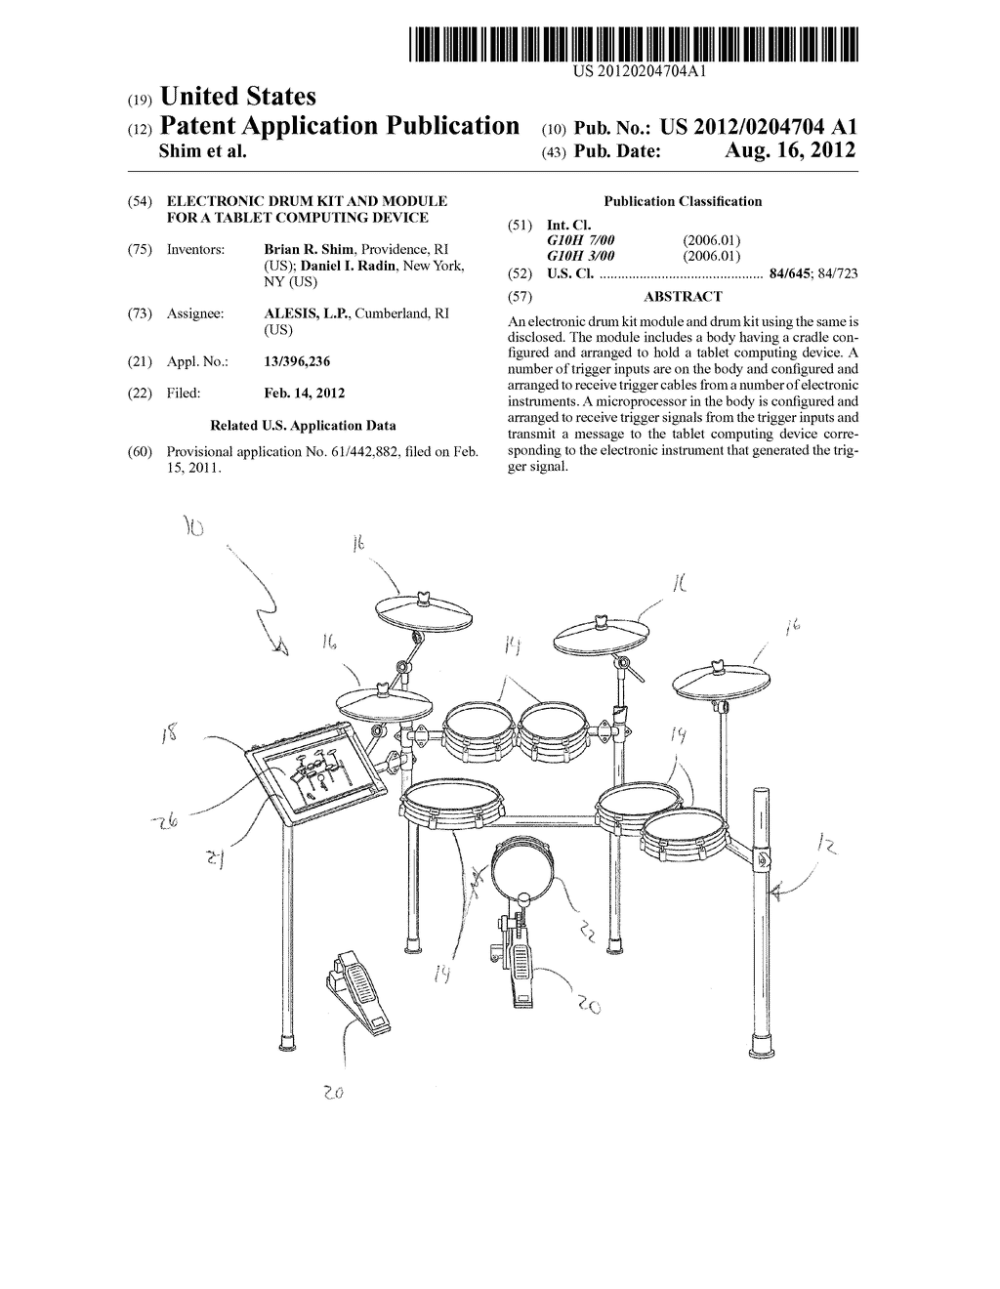 medium resolution of electronic drum kit and module for a tablet computing deviceelectronic drum kit and module for a